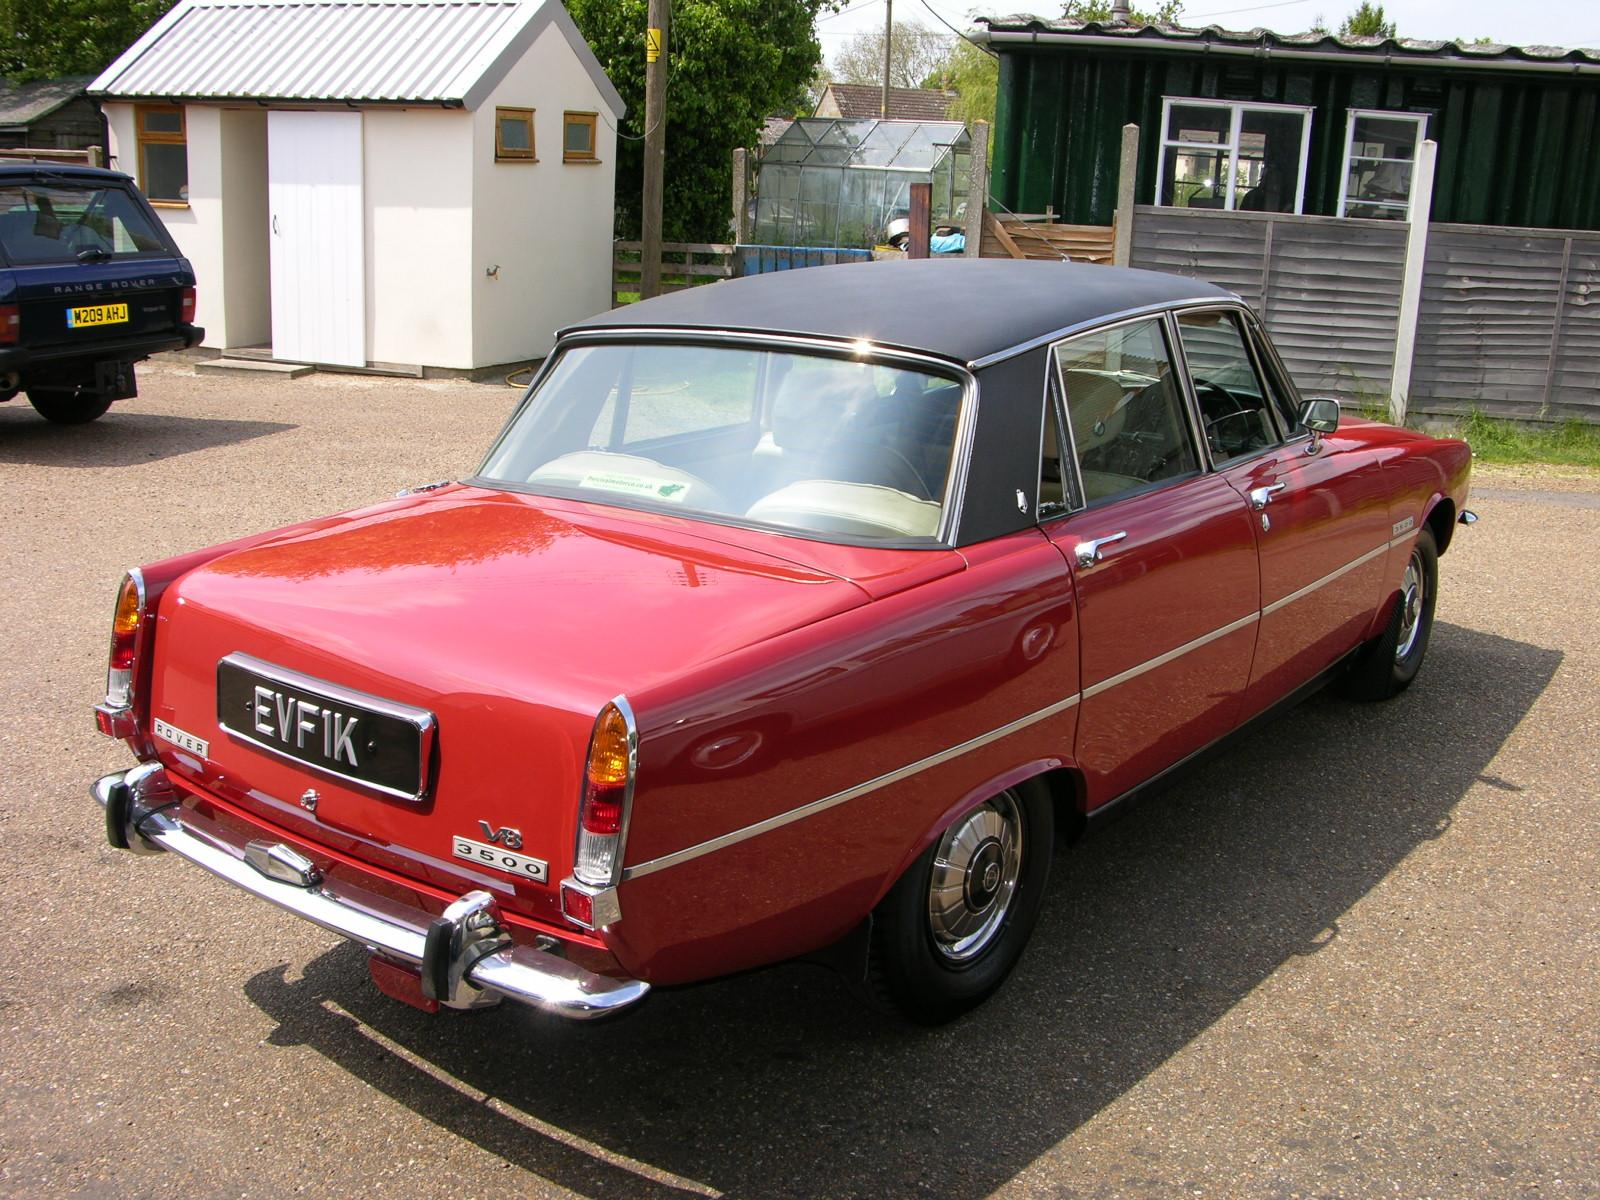 File:Rover 3500 V8 - Flickr - The Car Spy (26).jpg